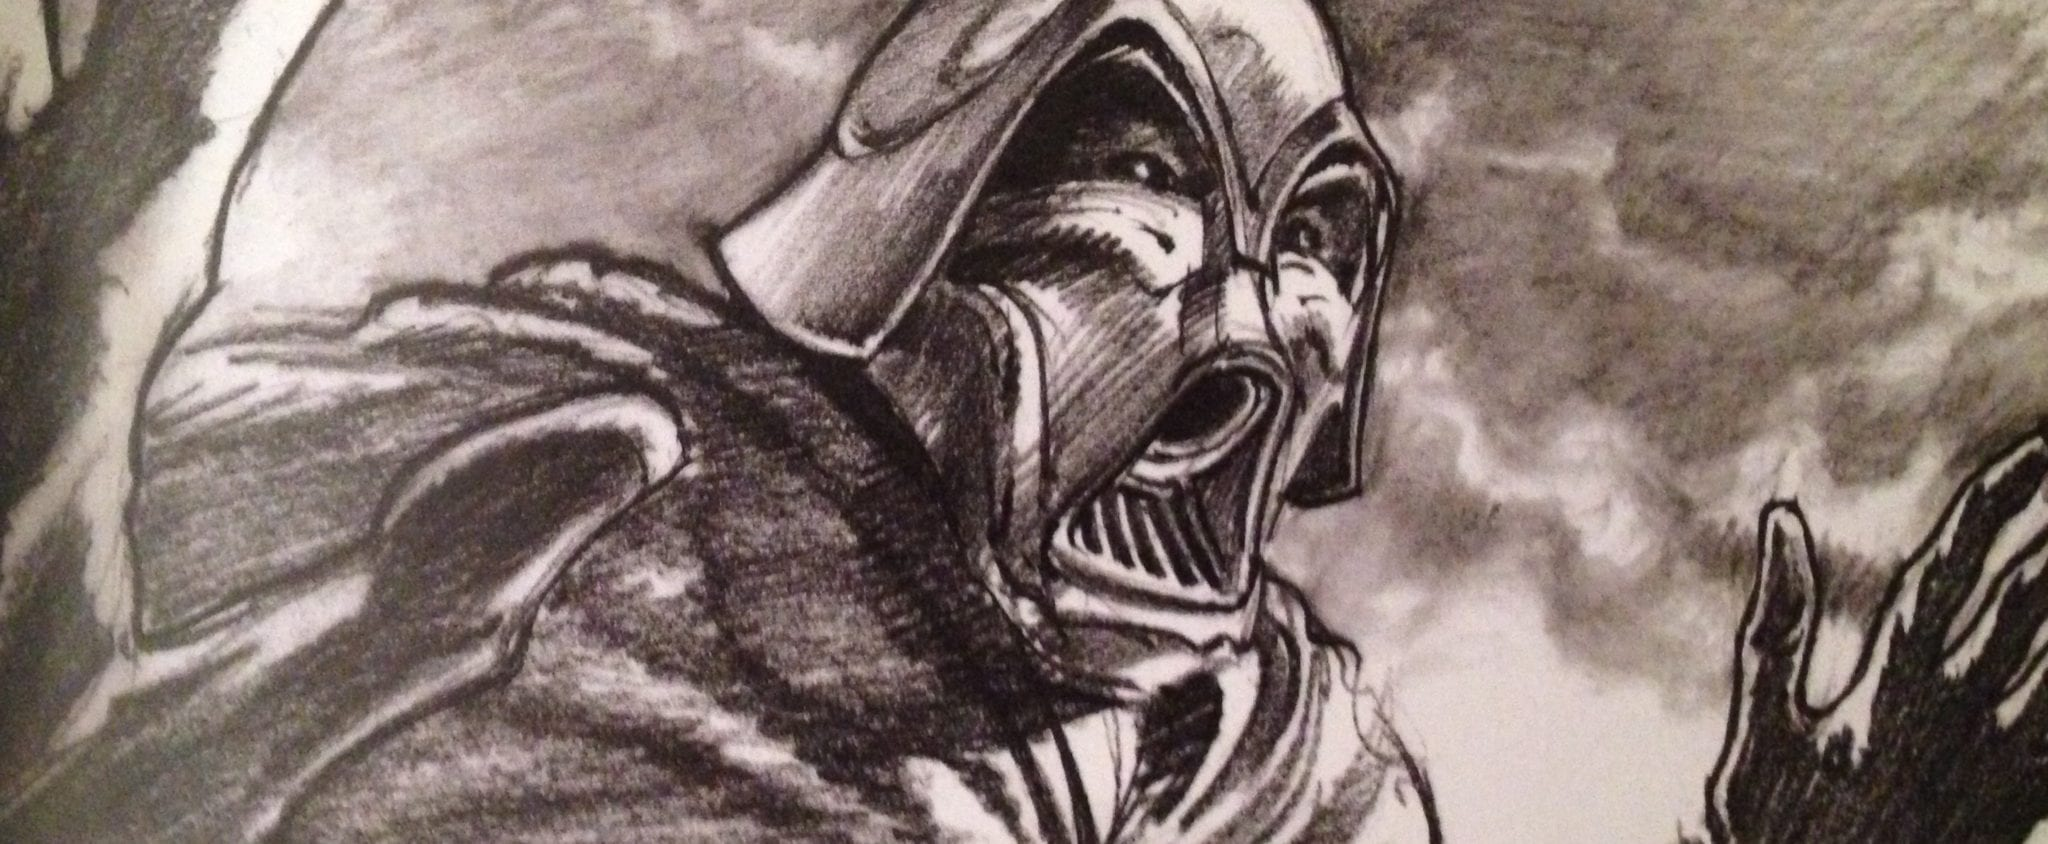 Book review star wars storyboards the original trilogy blast star wars storyboards the original trilogy 40 edited by jw rinzler foreword by joe johnston introduction by nilo rodis jamero malvernweather Image collections